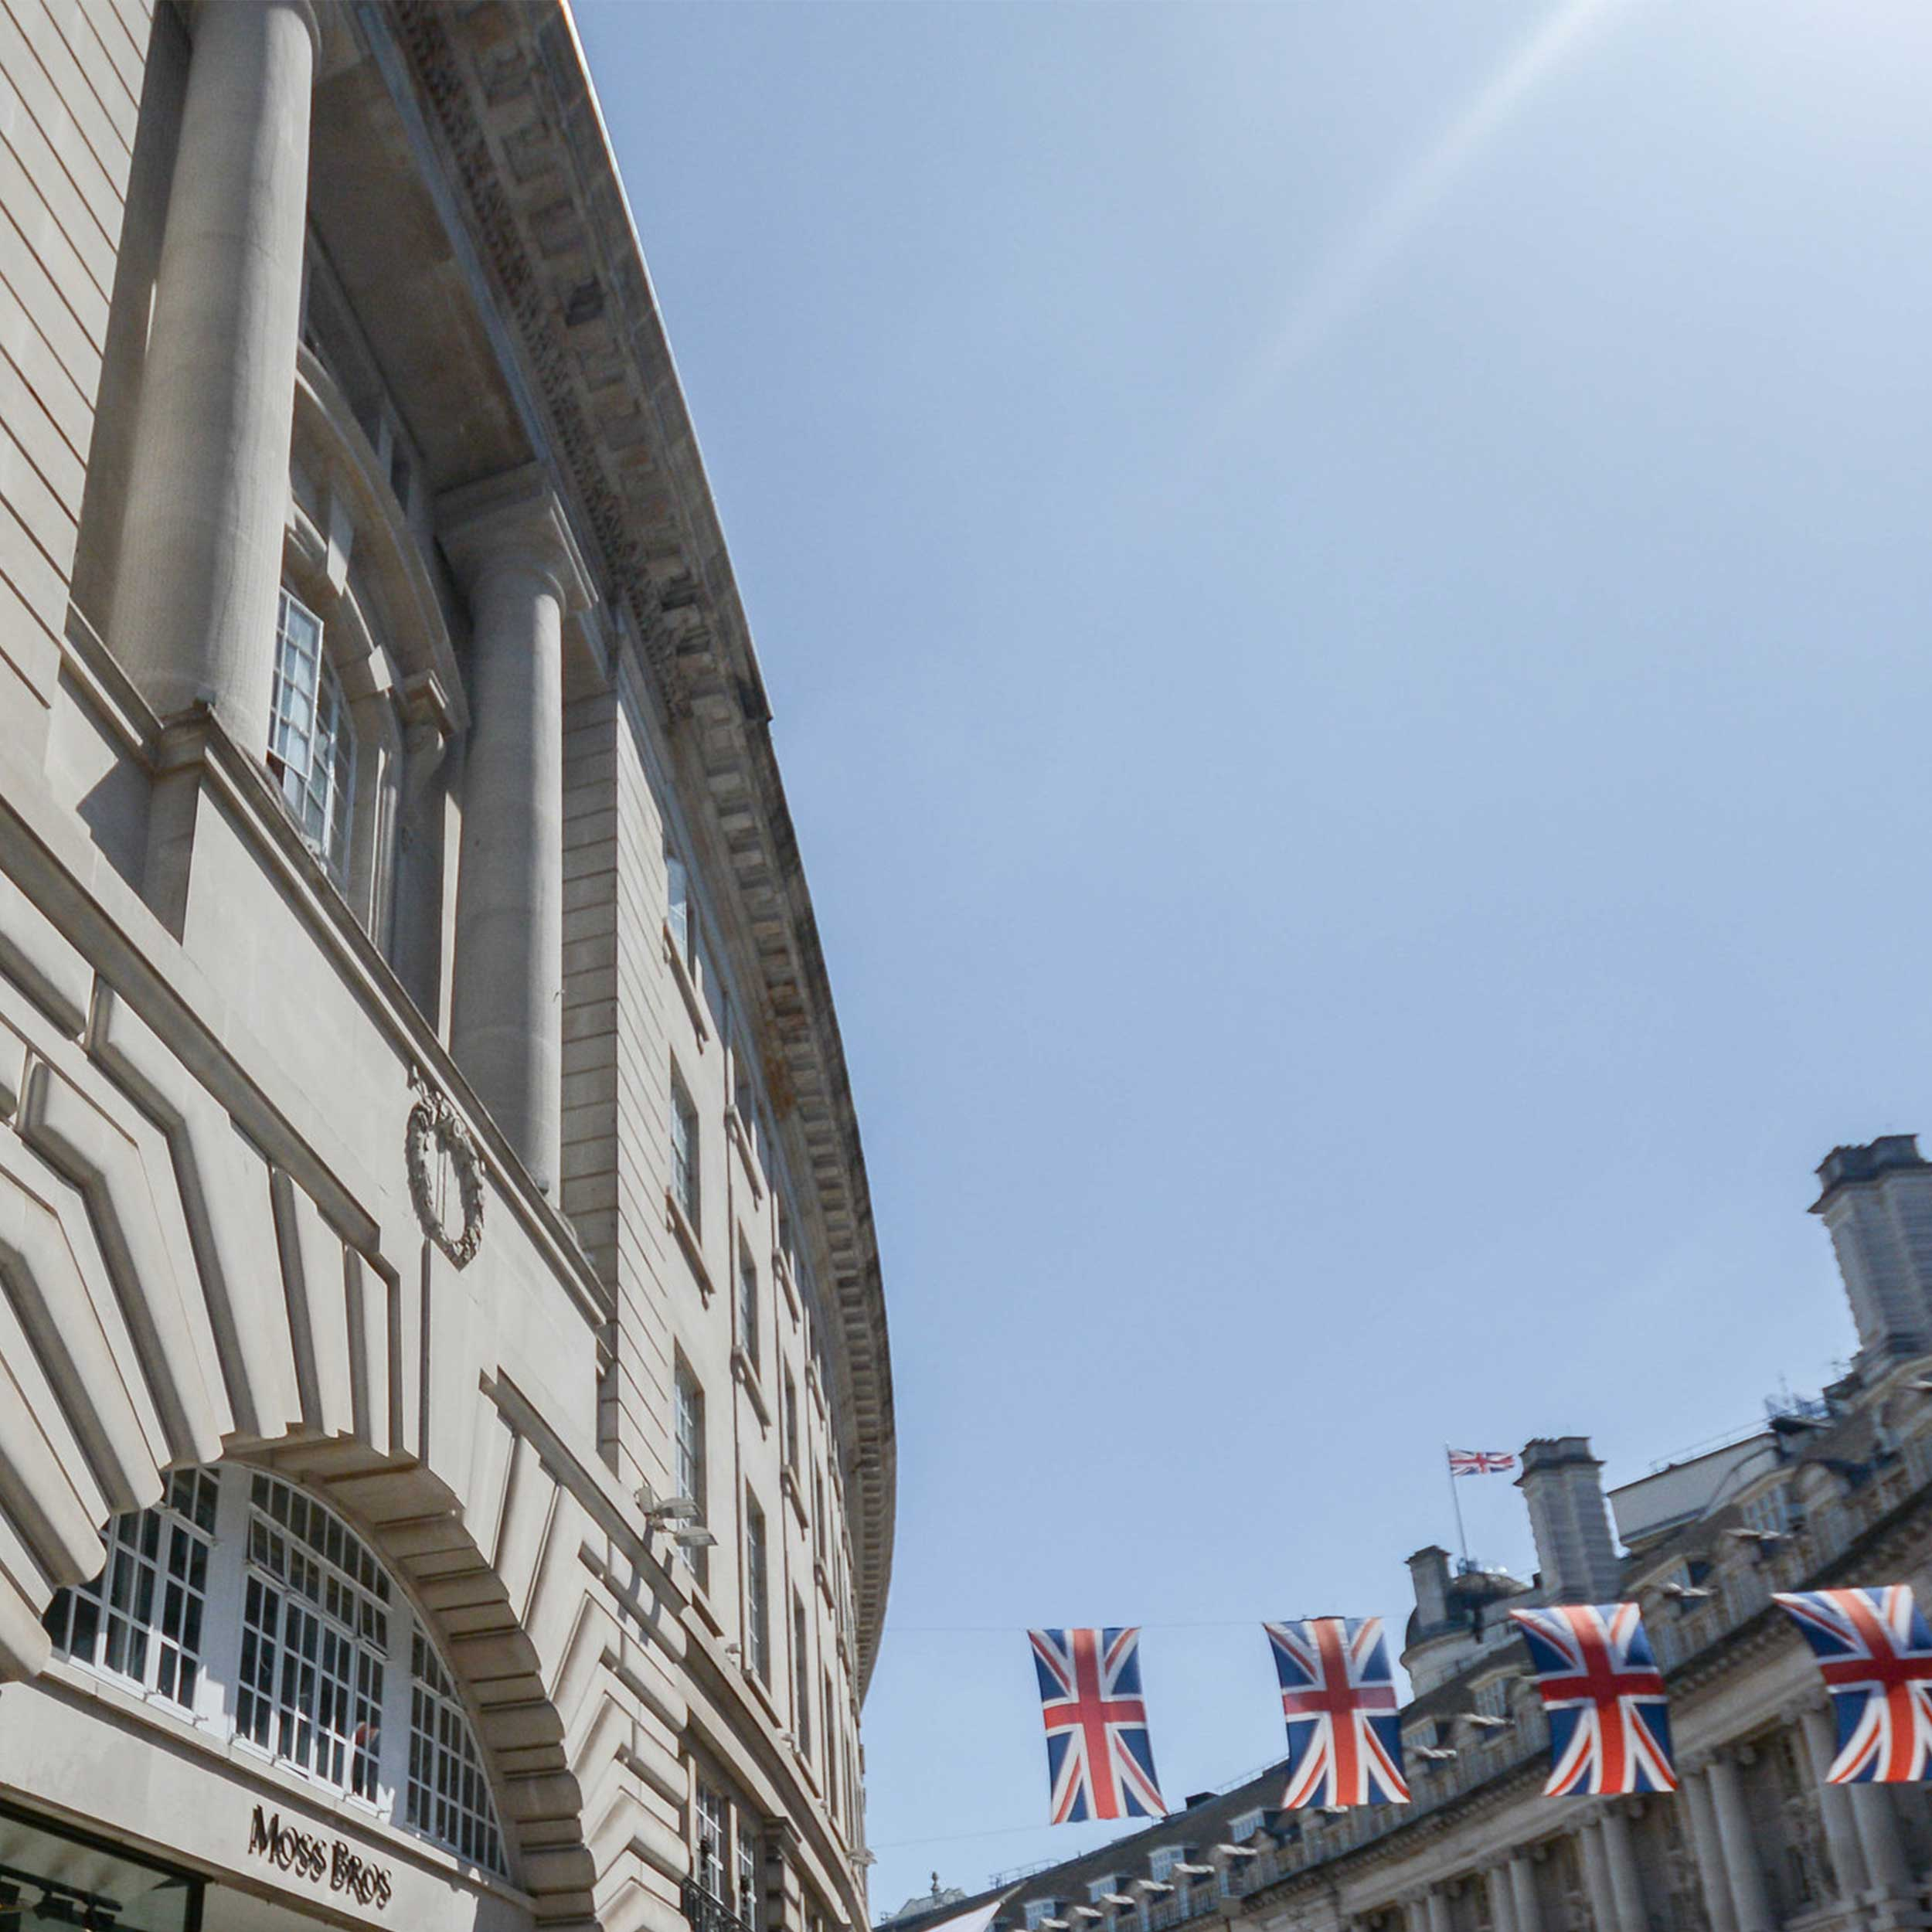 exterior of venture house office from regents street shows the british flag